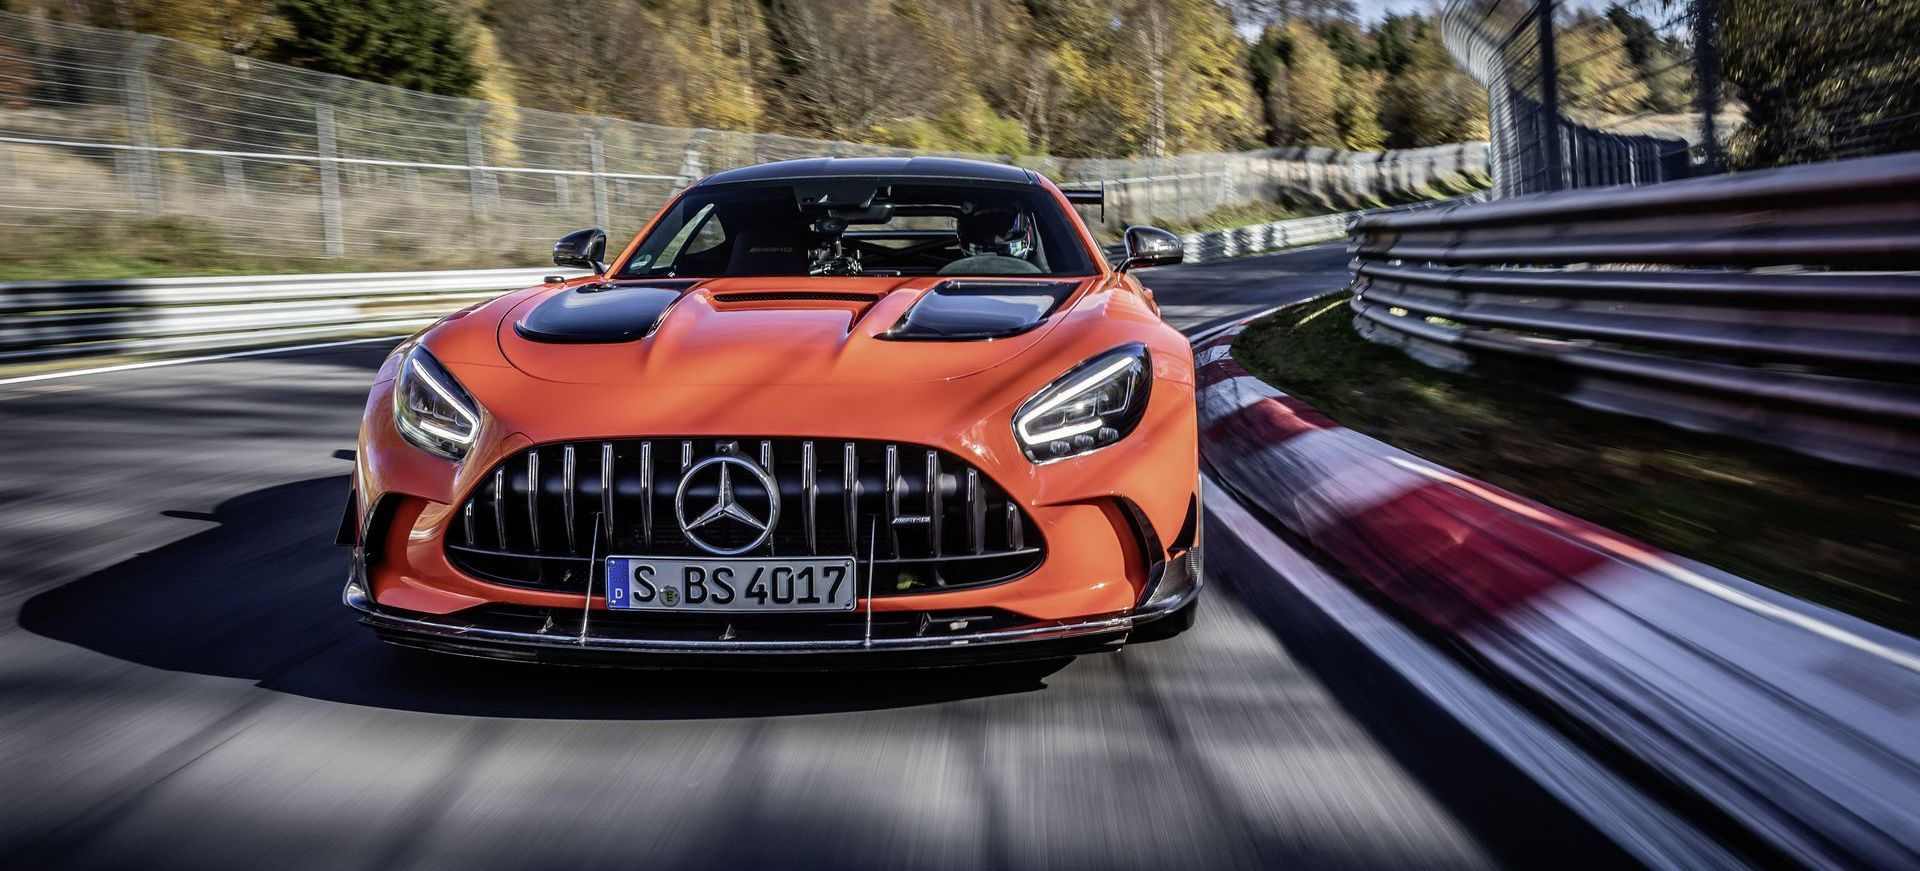 Mercedes Amg Gt Black Series Schnellstes Serienfahrzeug Auf Der Nürburgring Nordschleife Mercedes Amg Gt Black Series Is Fastest Series Production Car On The Nürburgring Nordschleife